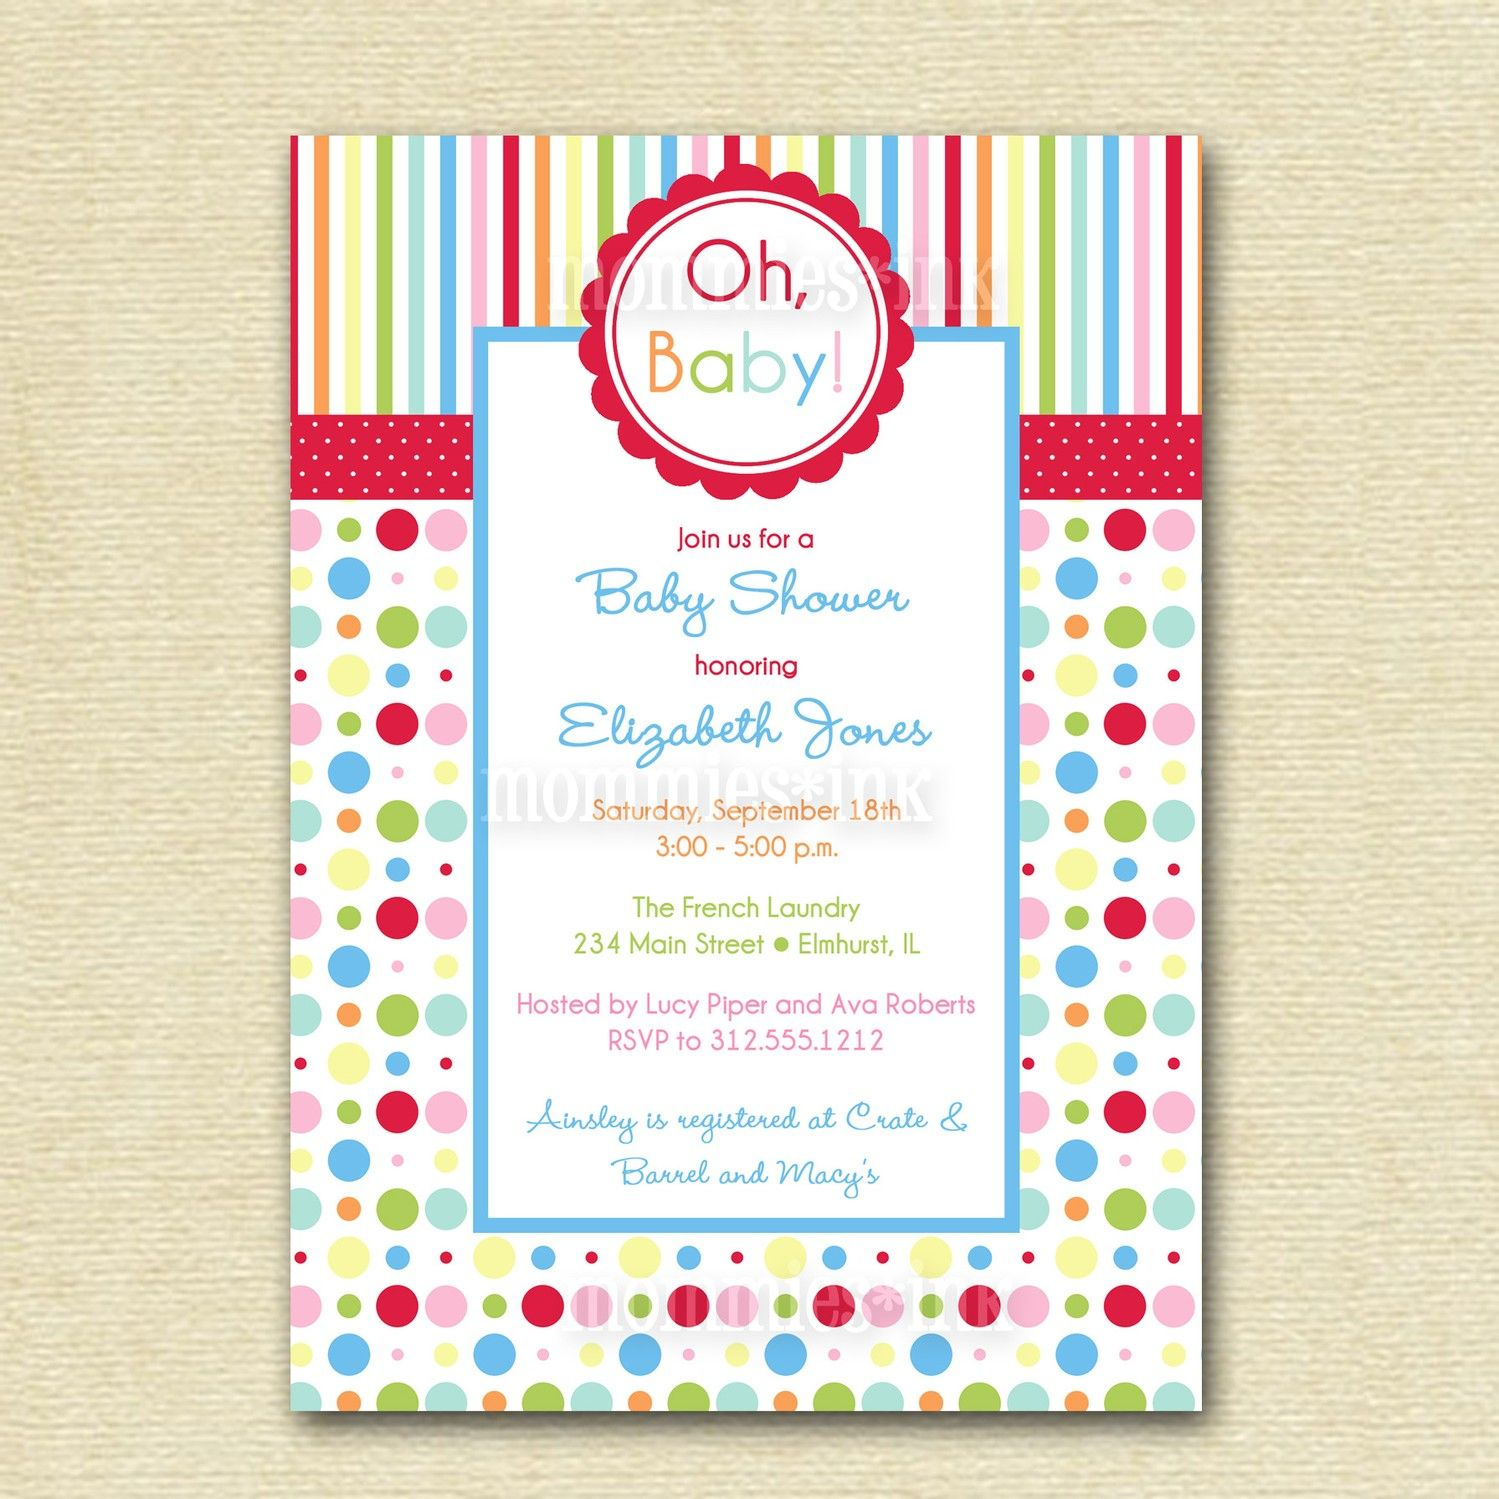 Rainbow Baby Shower Invite PRINTABLE INVITATION by MommiesInk